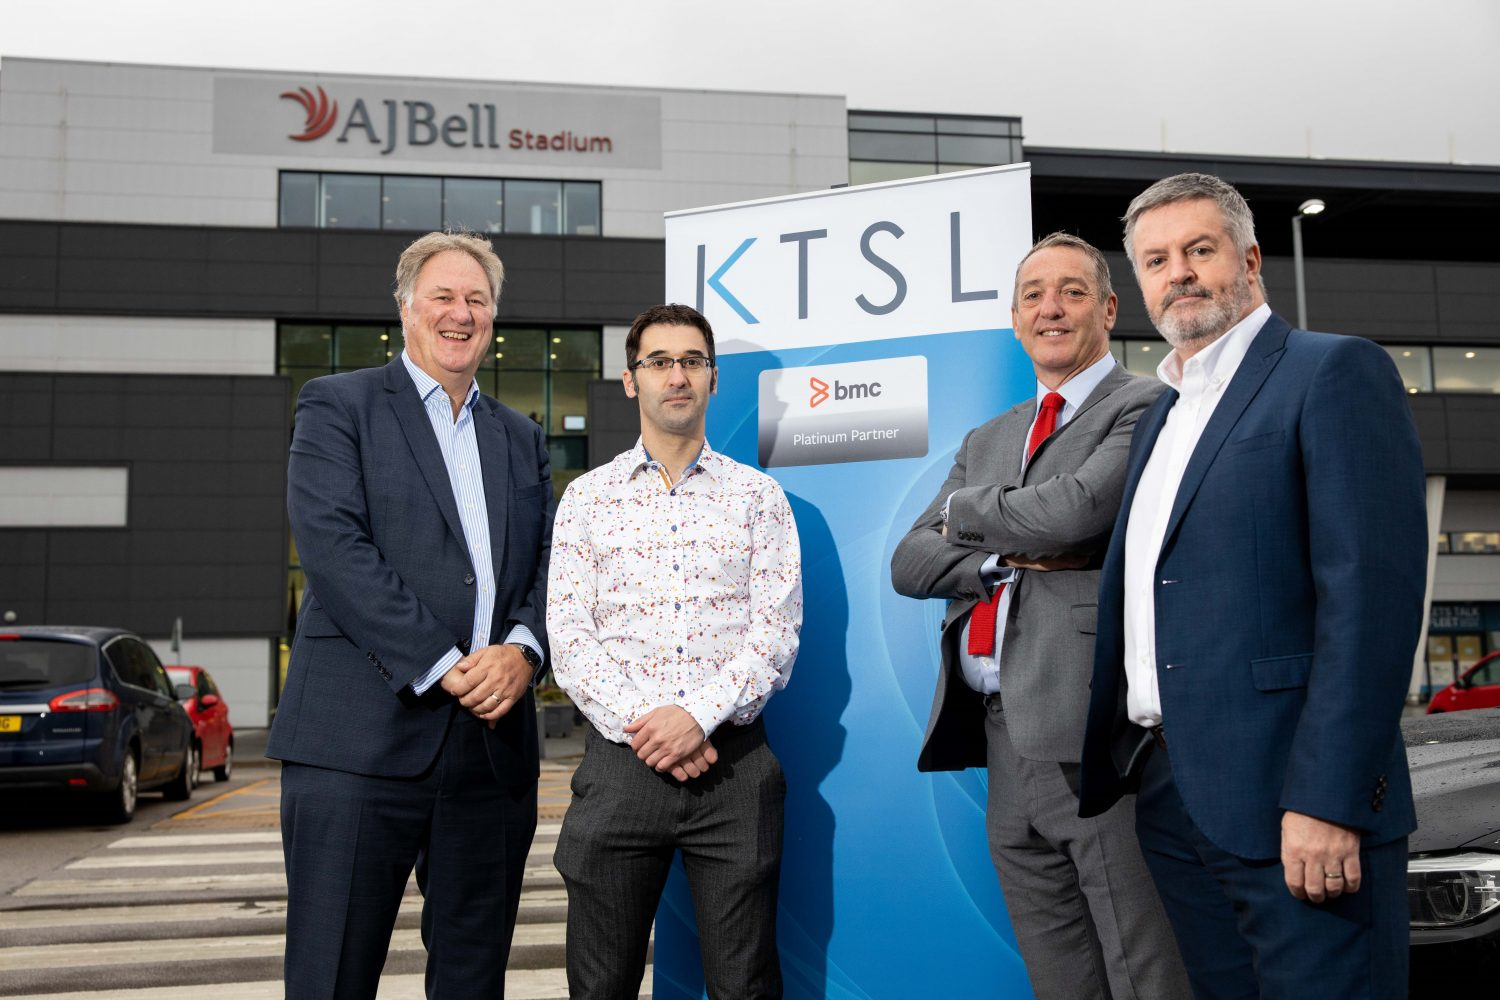 4 men stood outside of the AJ Bell Stadium with a KTSL pop up banner in the background